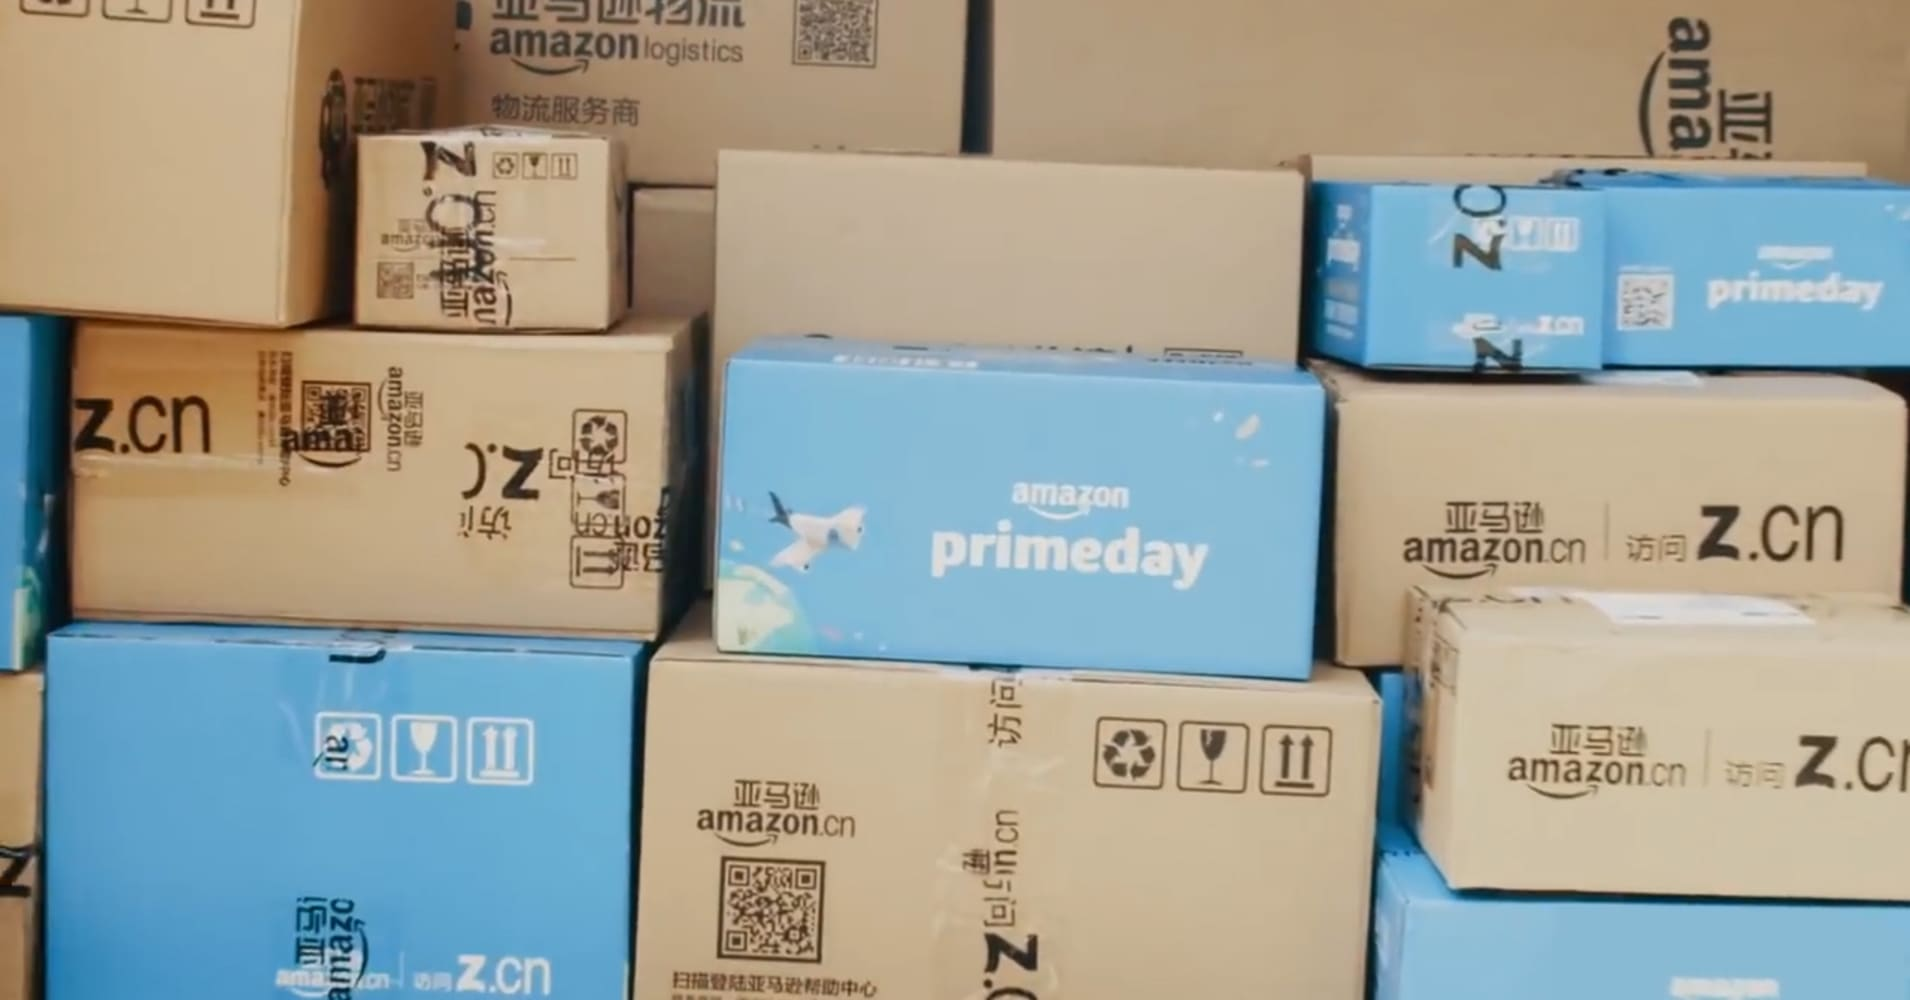 Biggest Amazon Prime buy of all may start the day after the sale ends